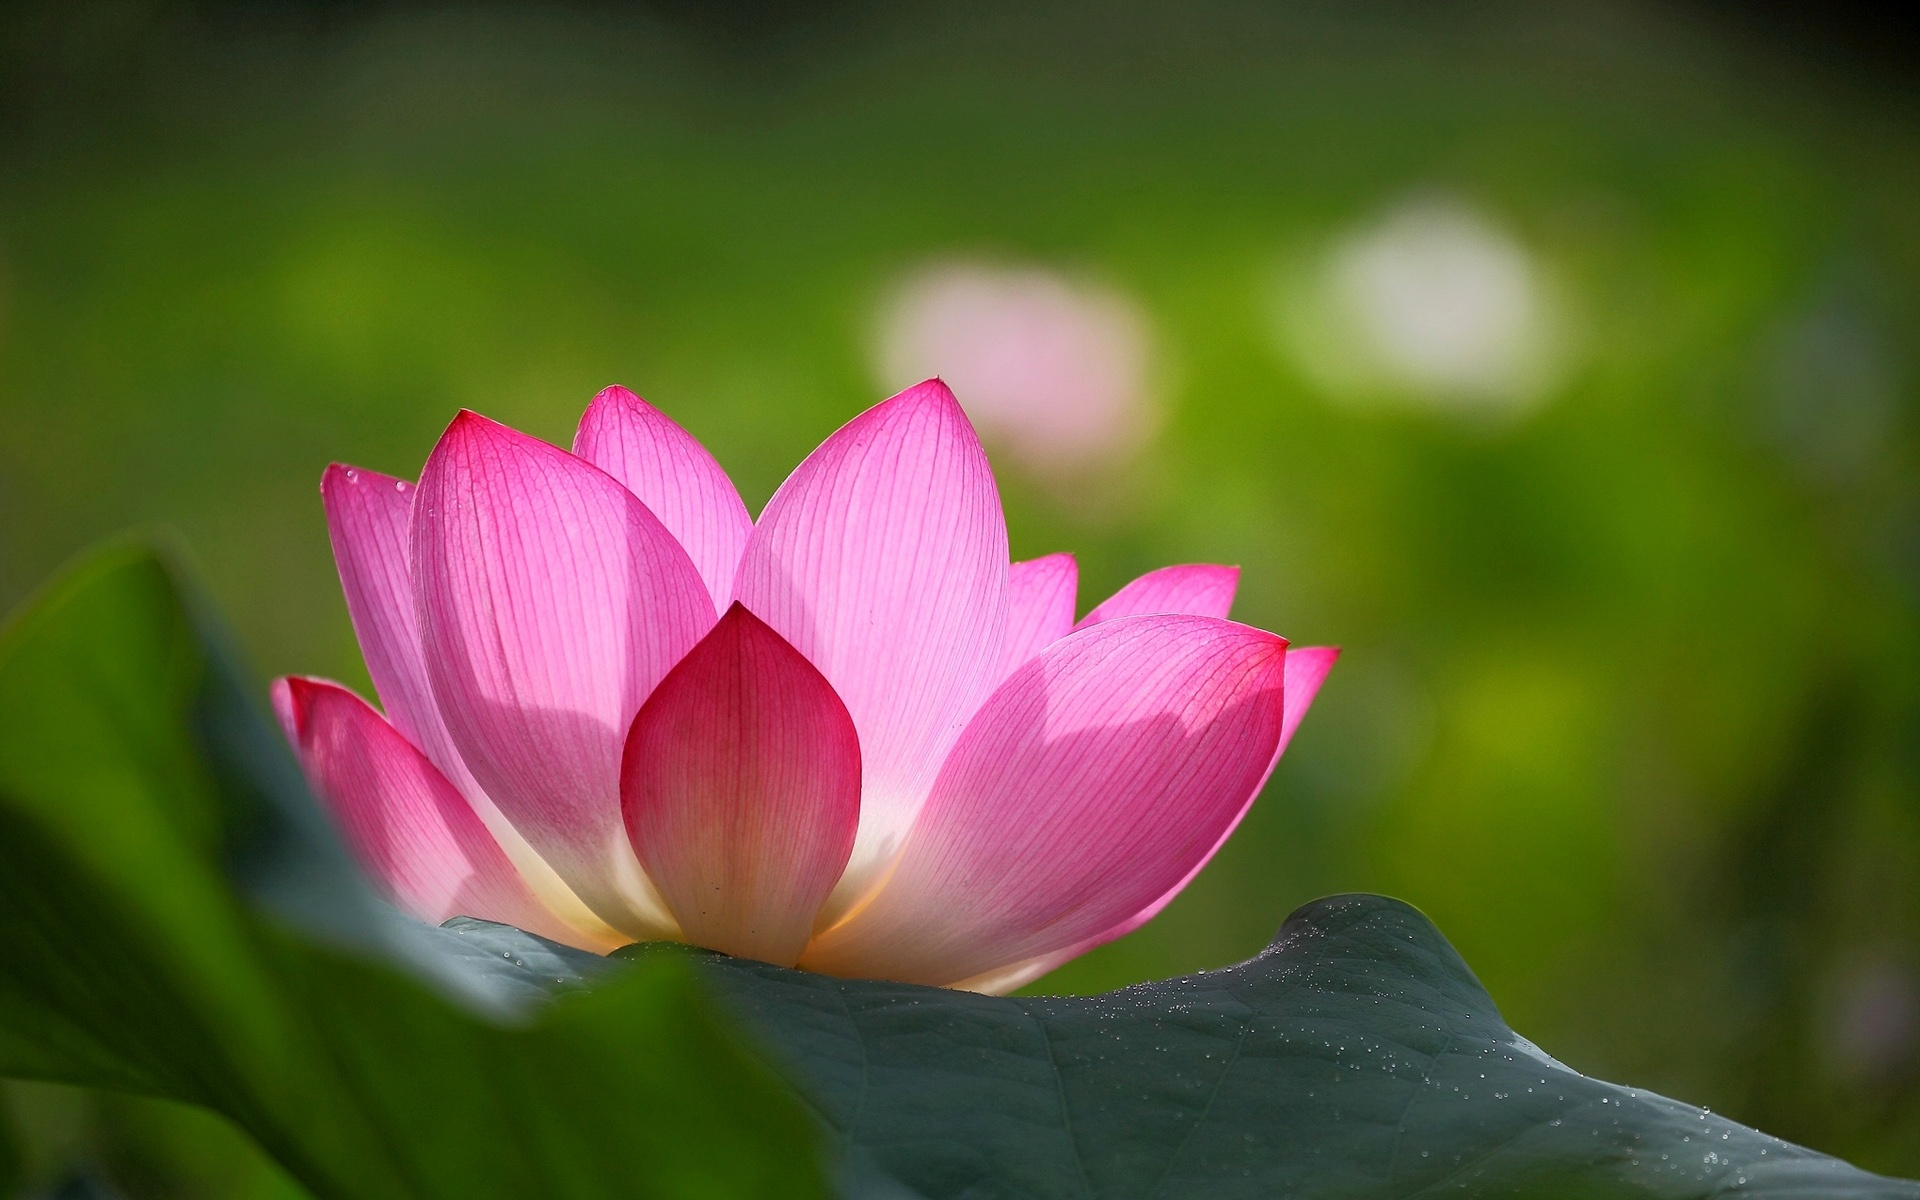 Wallpaper Pink Lotus Flower Green Leaves Blur Background Images, Photos, Reviews